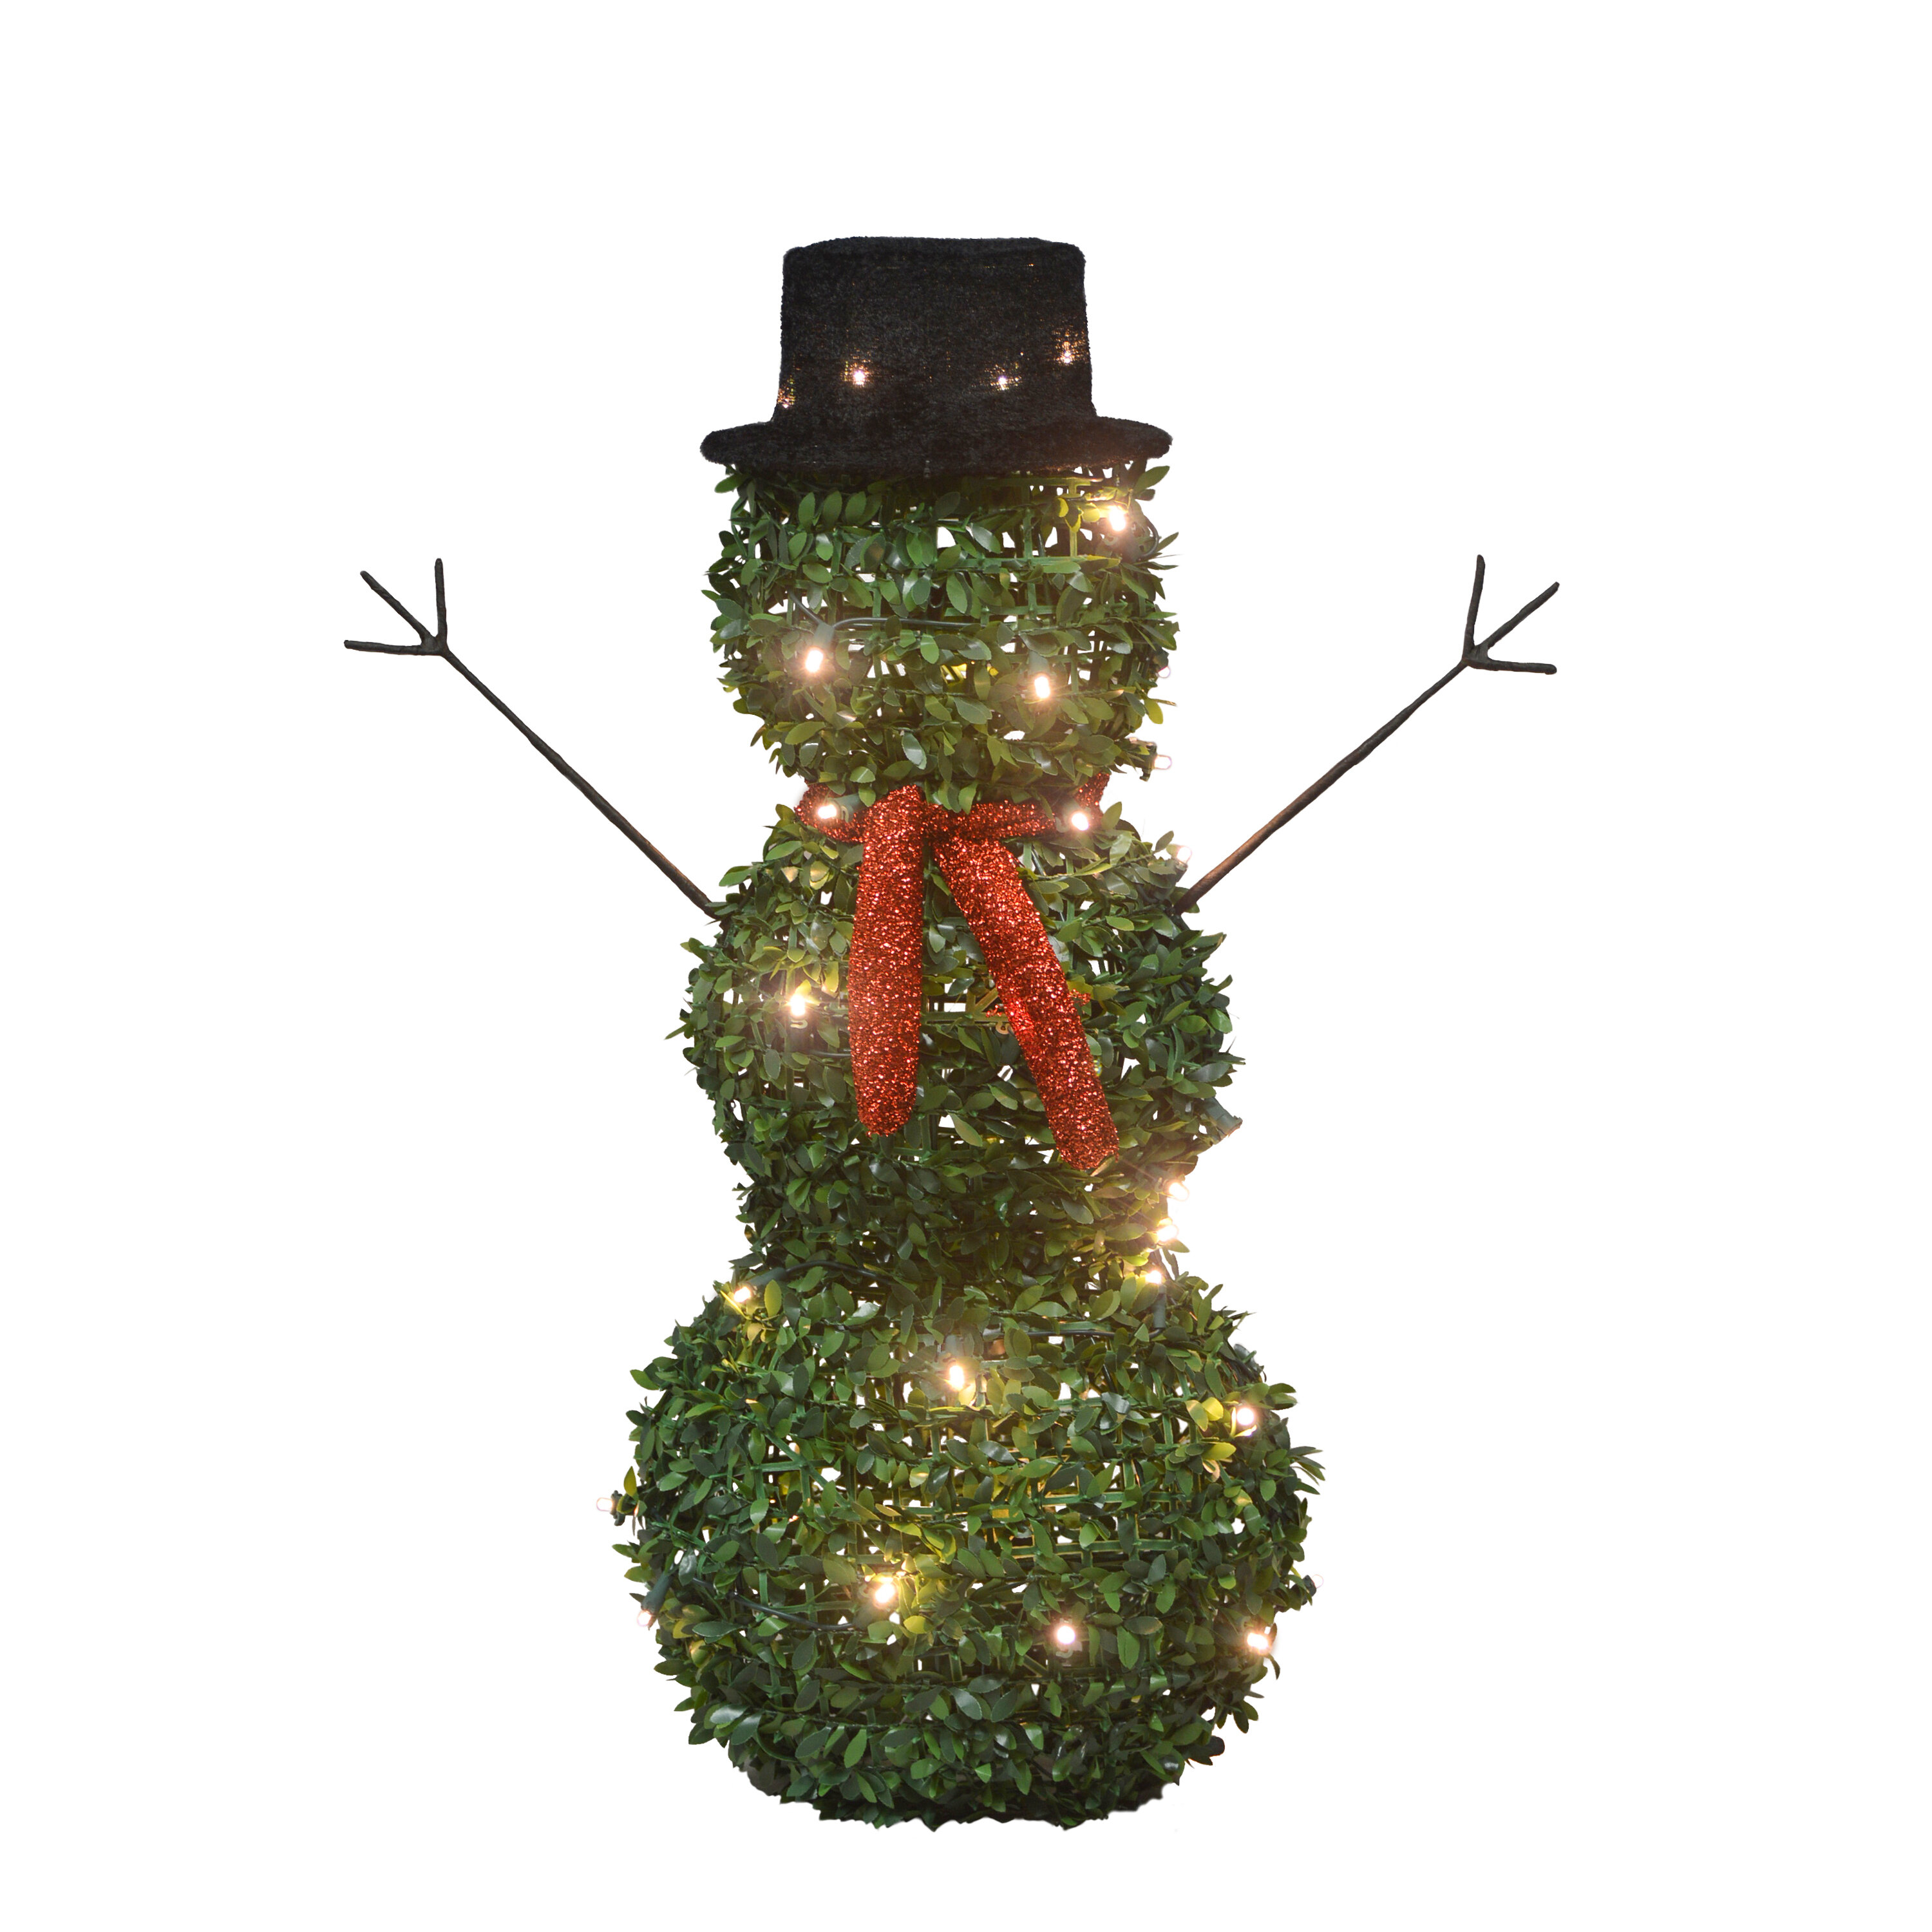 Lighted Lighted Displays Snowman Outdoor Christmas Decorations You Ll Love In 2021 Wayfair